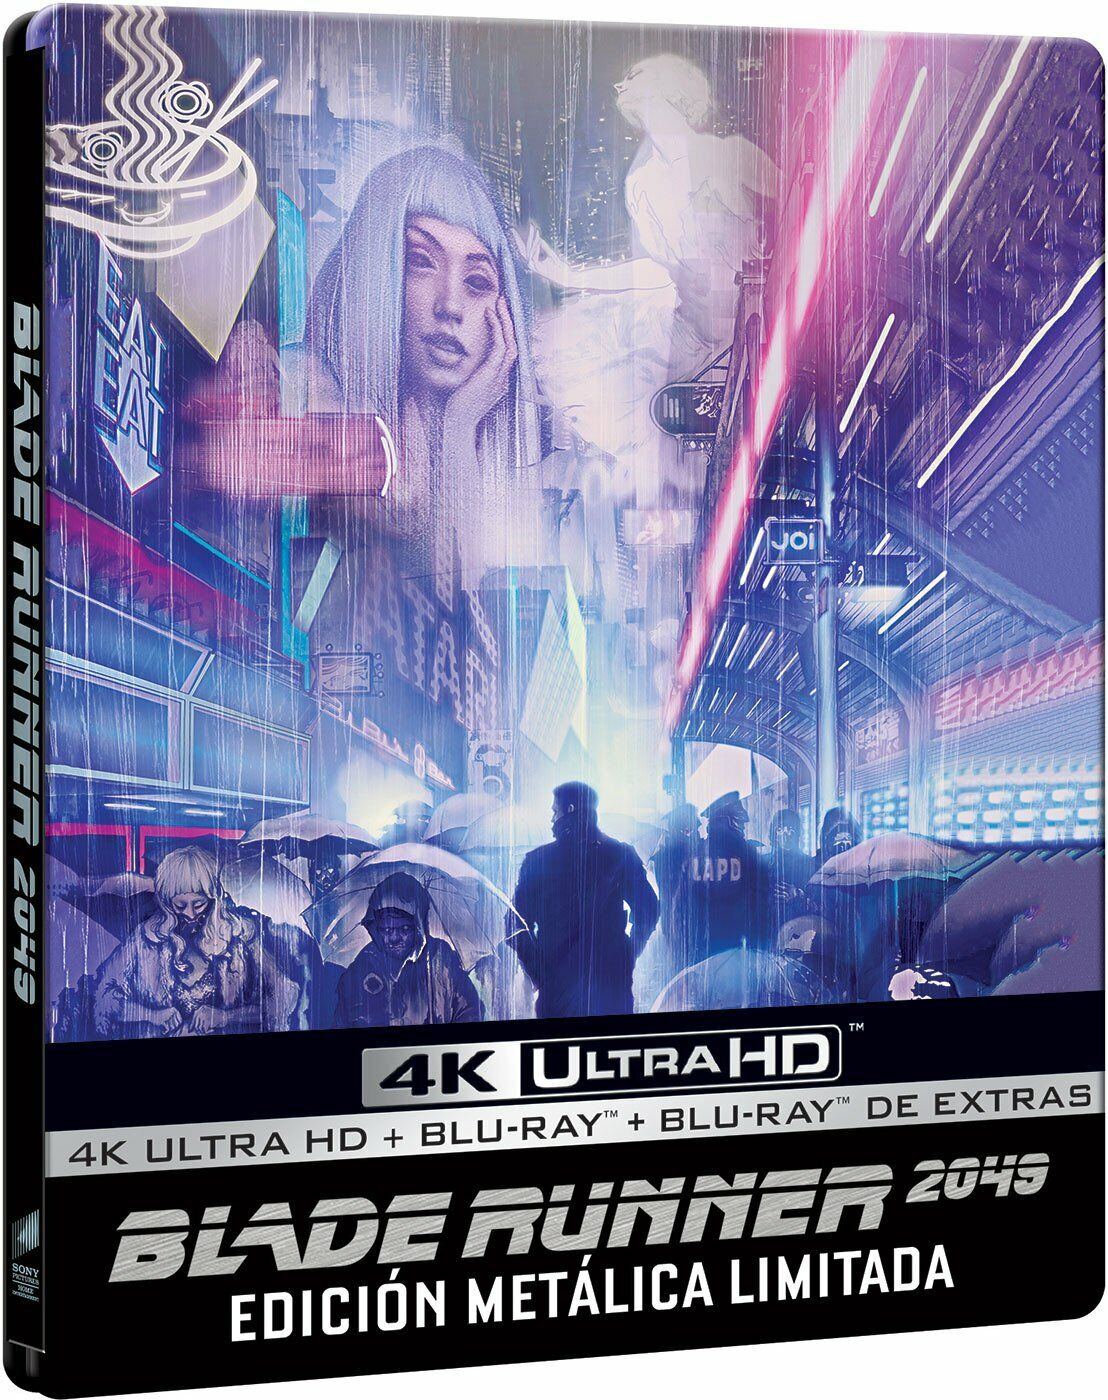 Blade Runner 2049 4k Uhd 3d Blu Ray 3 Disc Multi Language Options For Sale Online Ebay